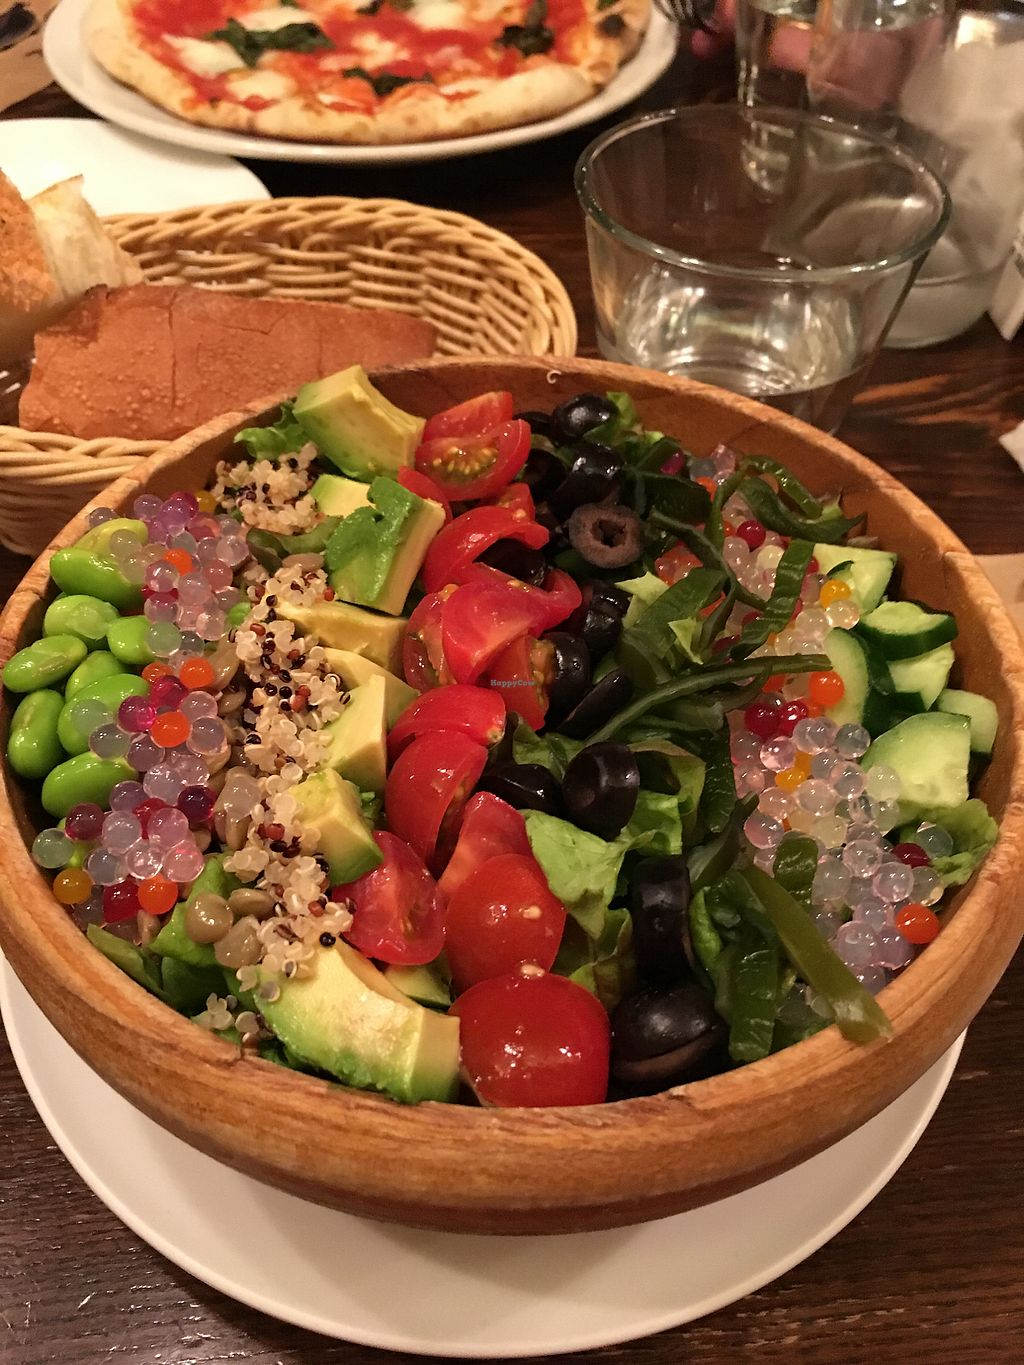 """Photo of Cafe La Boheme - Ginza  by <a href=""""/members/profile/Siup"""">Siup</a> <br/>Vegan salad  <br/> March 30, 2018  - <a href='/contact/abuse/image/93480/378204'>Report</a>"""